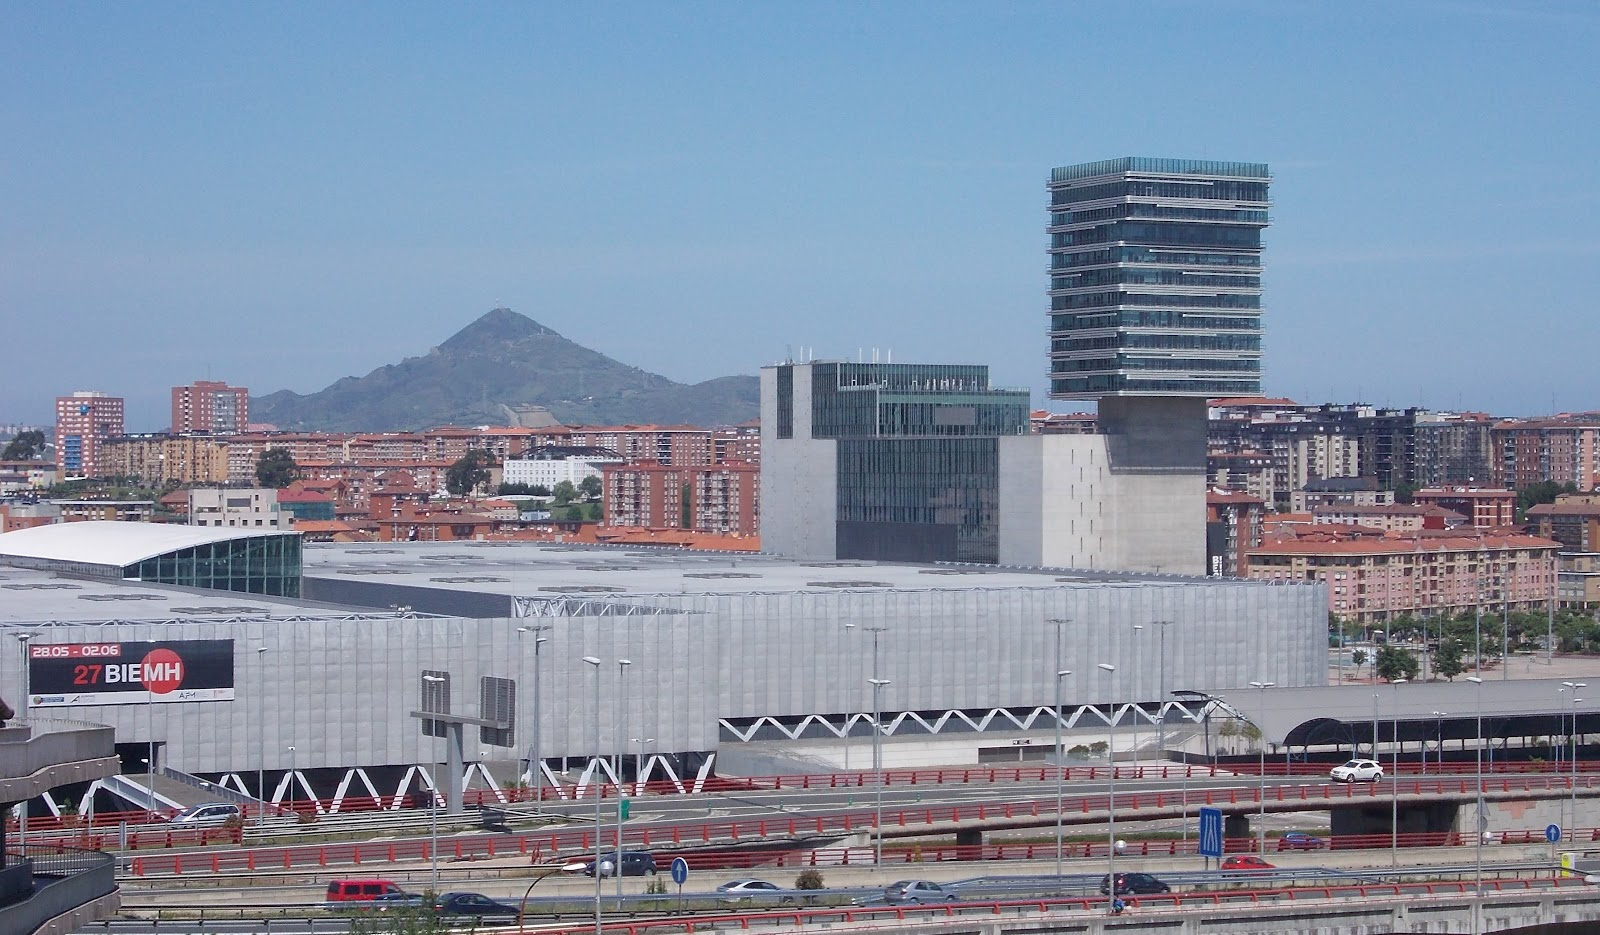 Exhibition center, Bilbao by Sara Monasterio